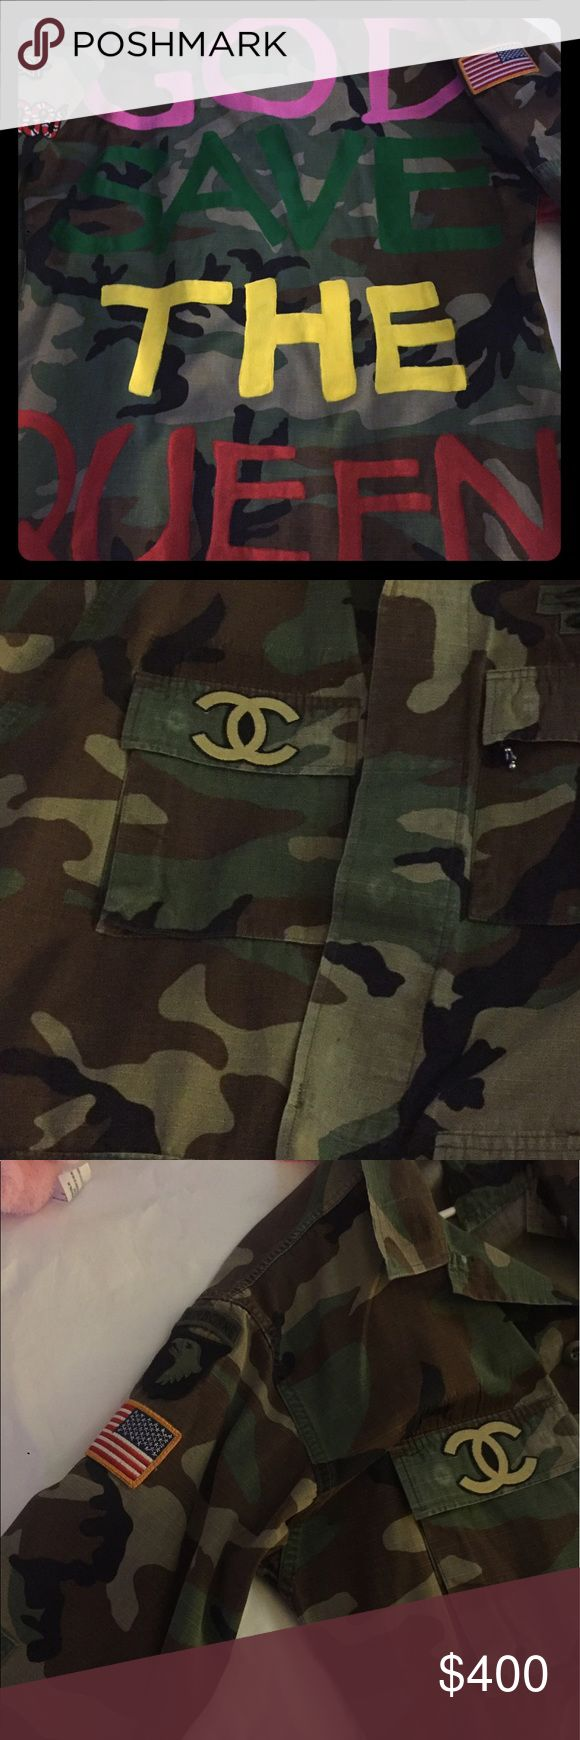 GOD SAVE THE QUEEN CAMO JACKET One of a kind, authentic military camo jacket, price firm, OVERSIZED FIT, medium/large. Yeezy Jackets & Coats